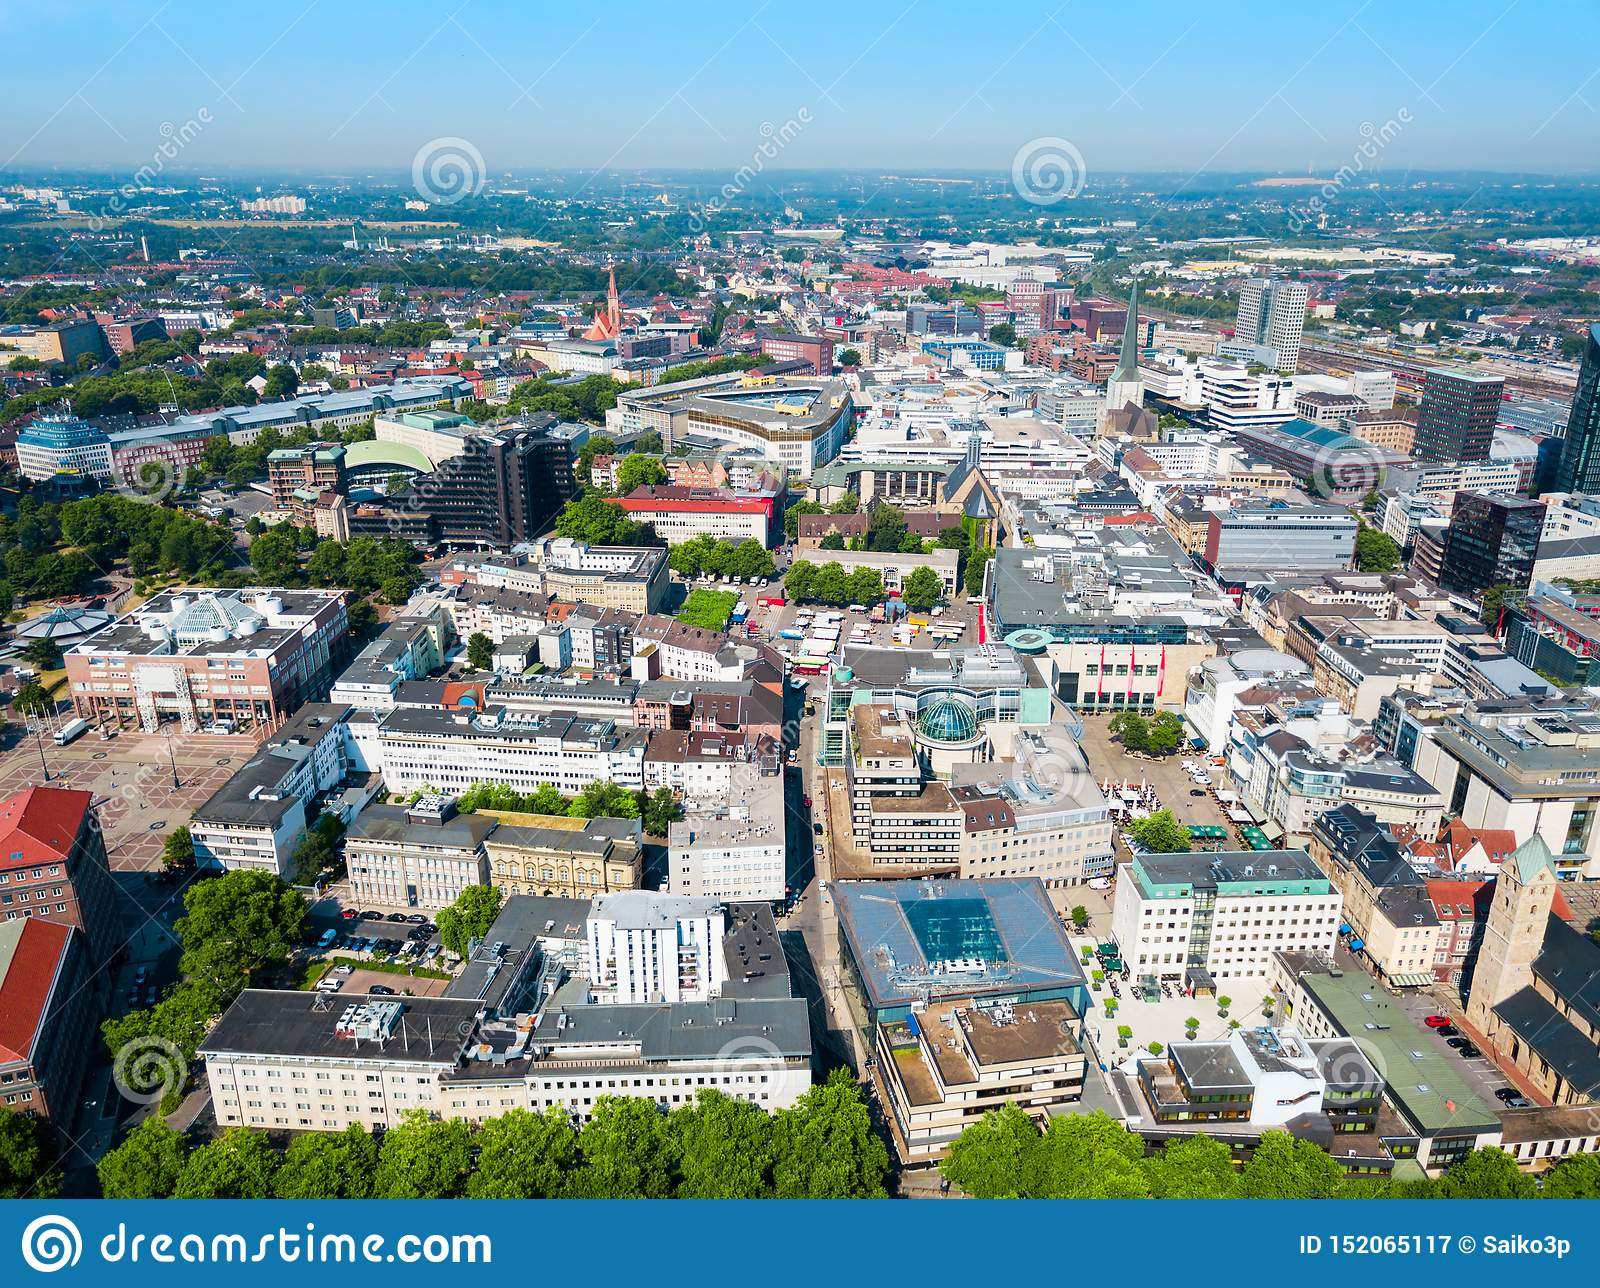 Dortmund City Centre Aerial View Stock Image - Image of area, architecture:  152065117